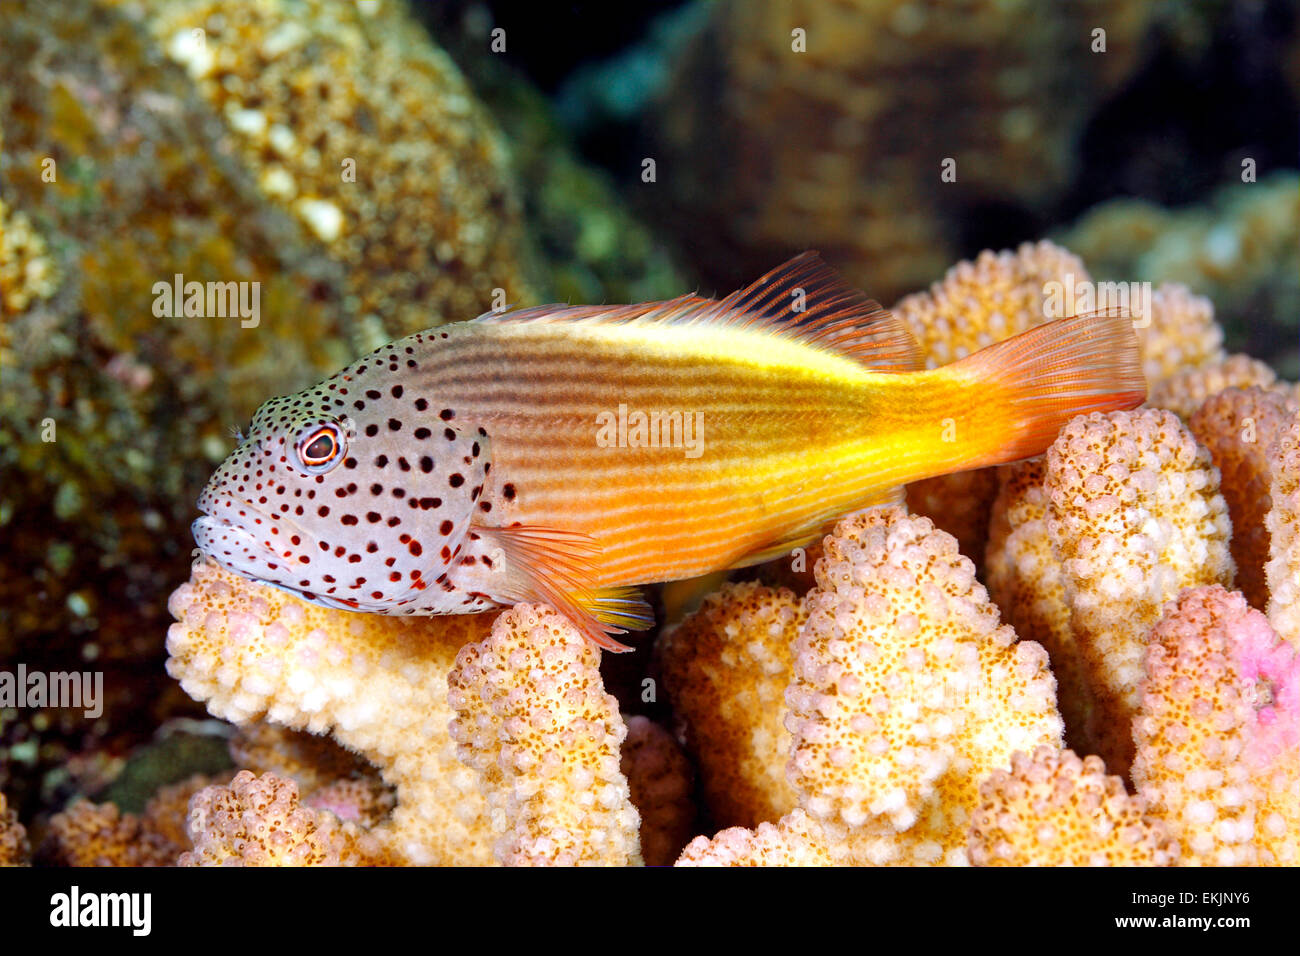 Blackside Hawkfish, Paracirrhites forsteri, resting on hard corals on the reef. Also known as Freckled Hawkfish. - Stock Image